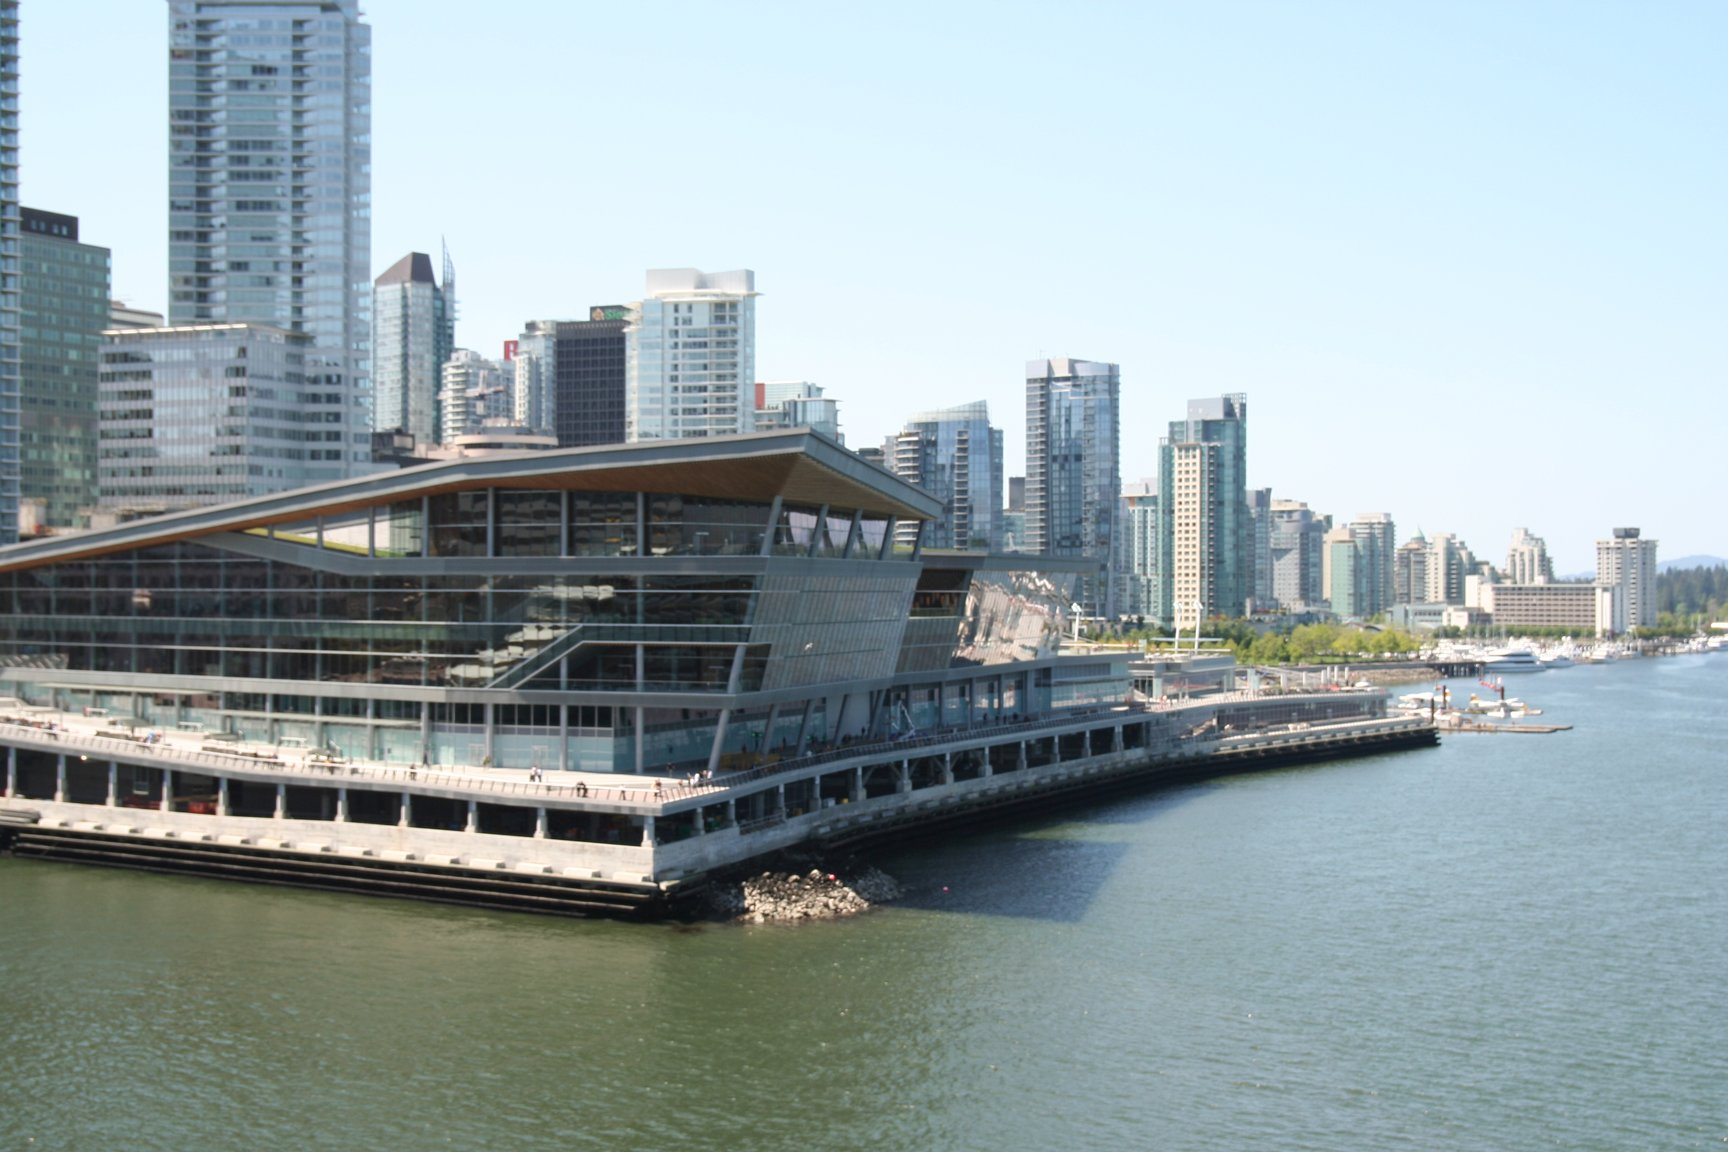 File:Vancouver-convention-centre-west-1.jpg - Wikimedia Commons